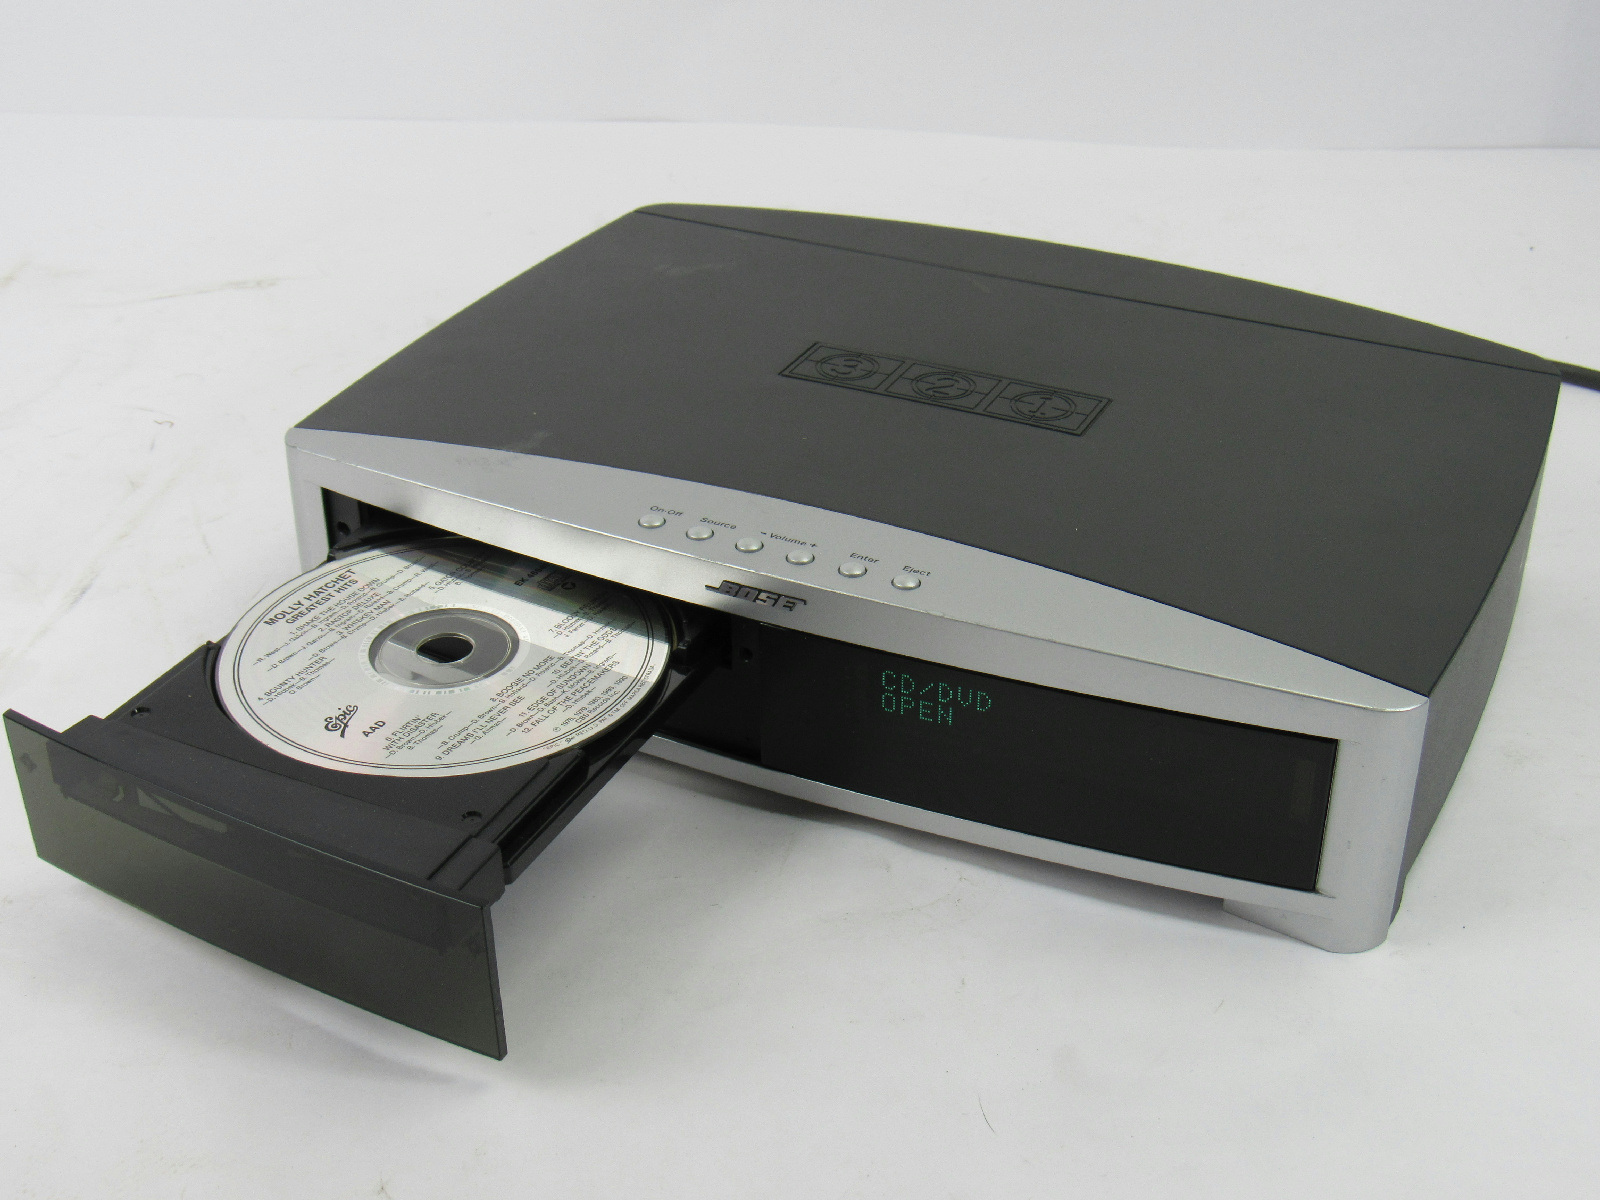 Bose 321 Home Theater System Series Ii Media Center Dvd